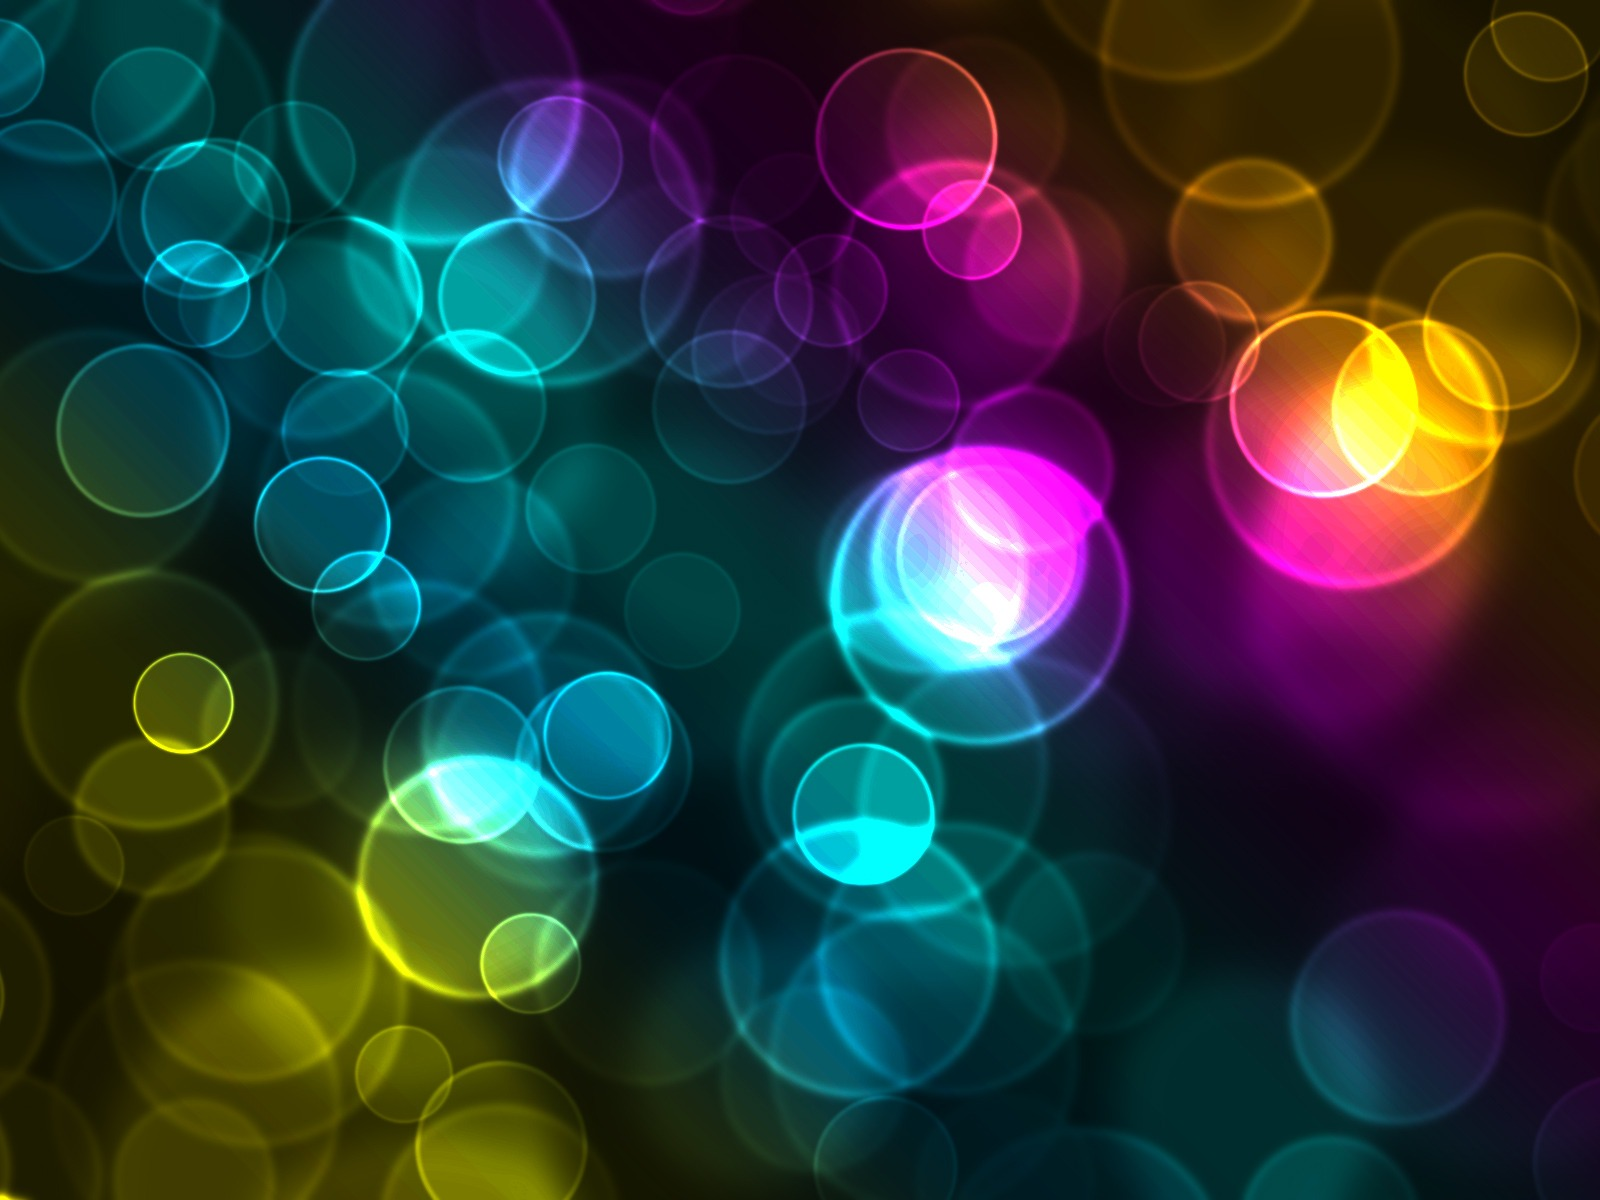 Colorful Abstract - HD Wallpaper